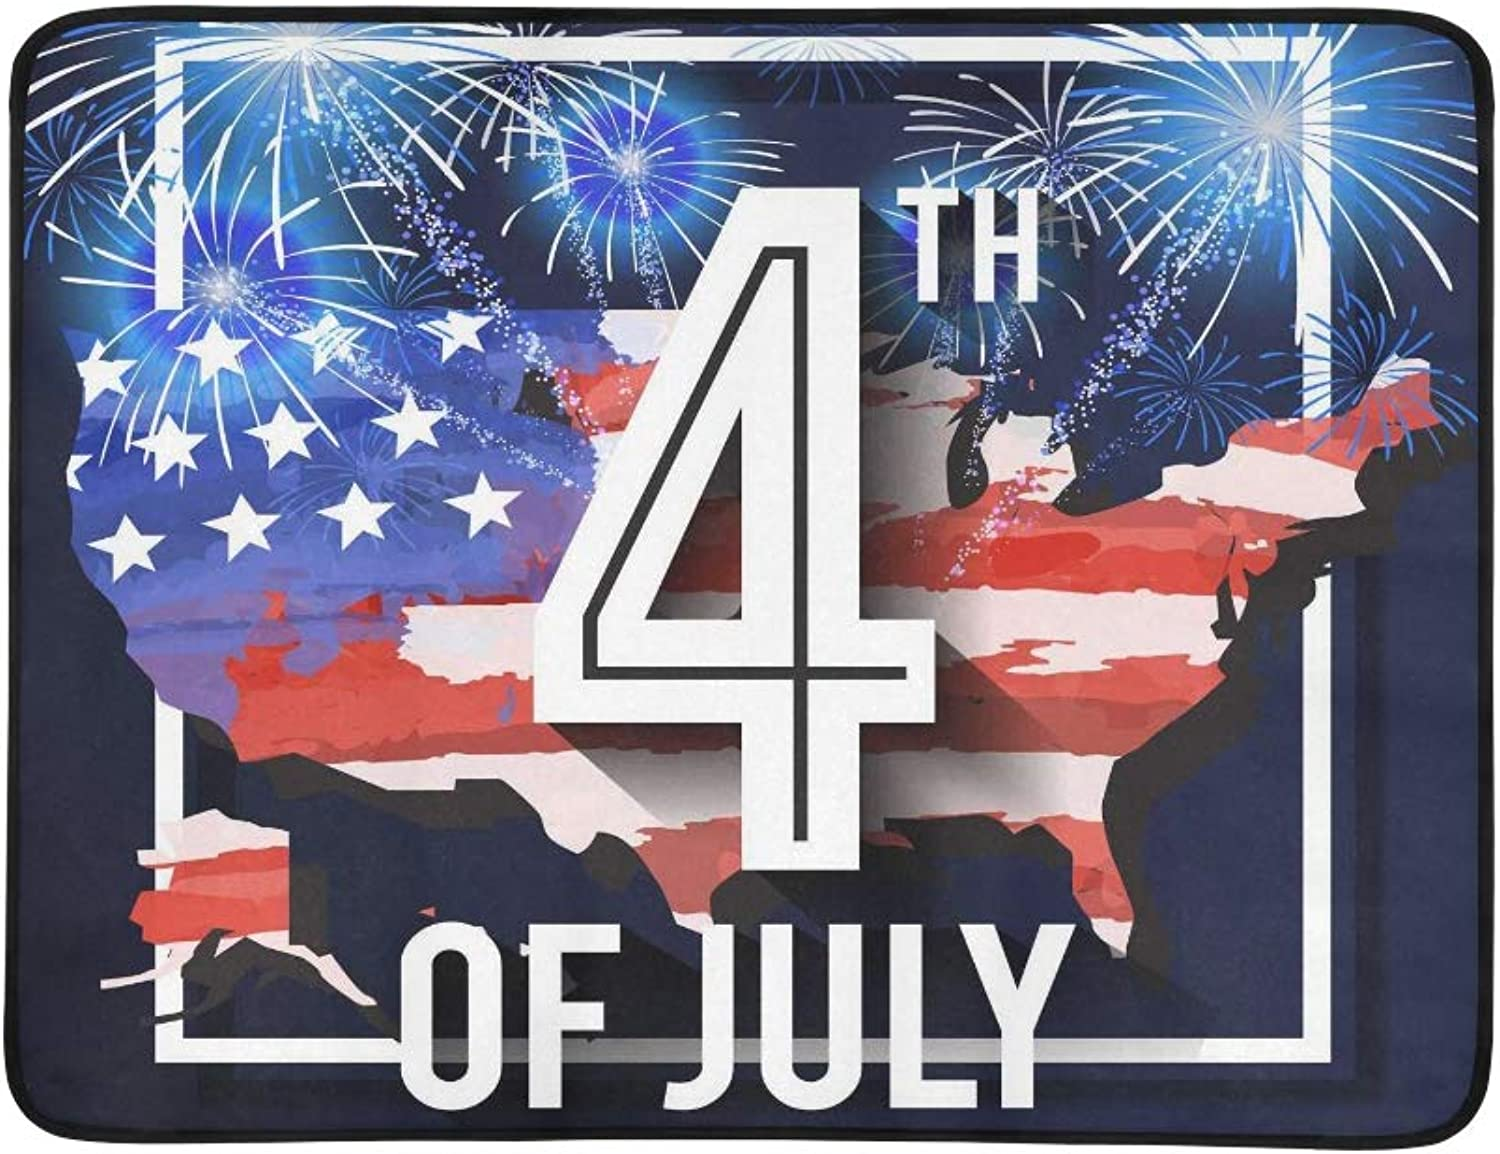 American USA Flag Map Th of July Pattern Portable and Foldable Blanket Mat 60x78 Inch Handy Mat for Camping Picnic Beach Indoor Outdoor Travel